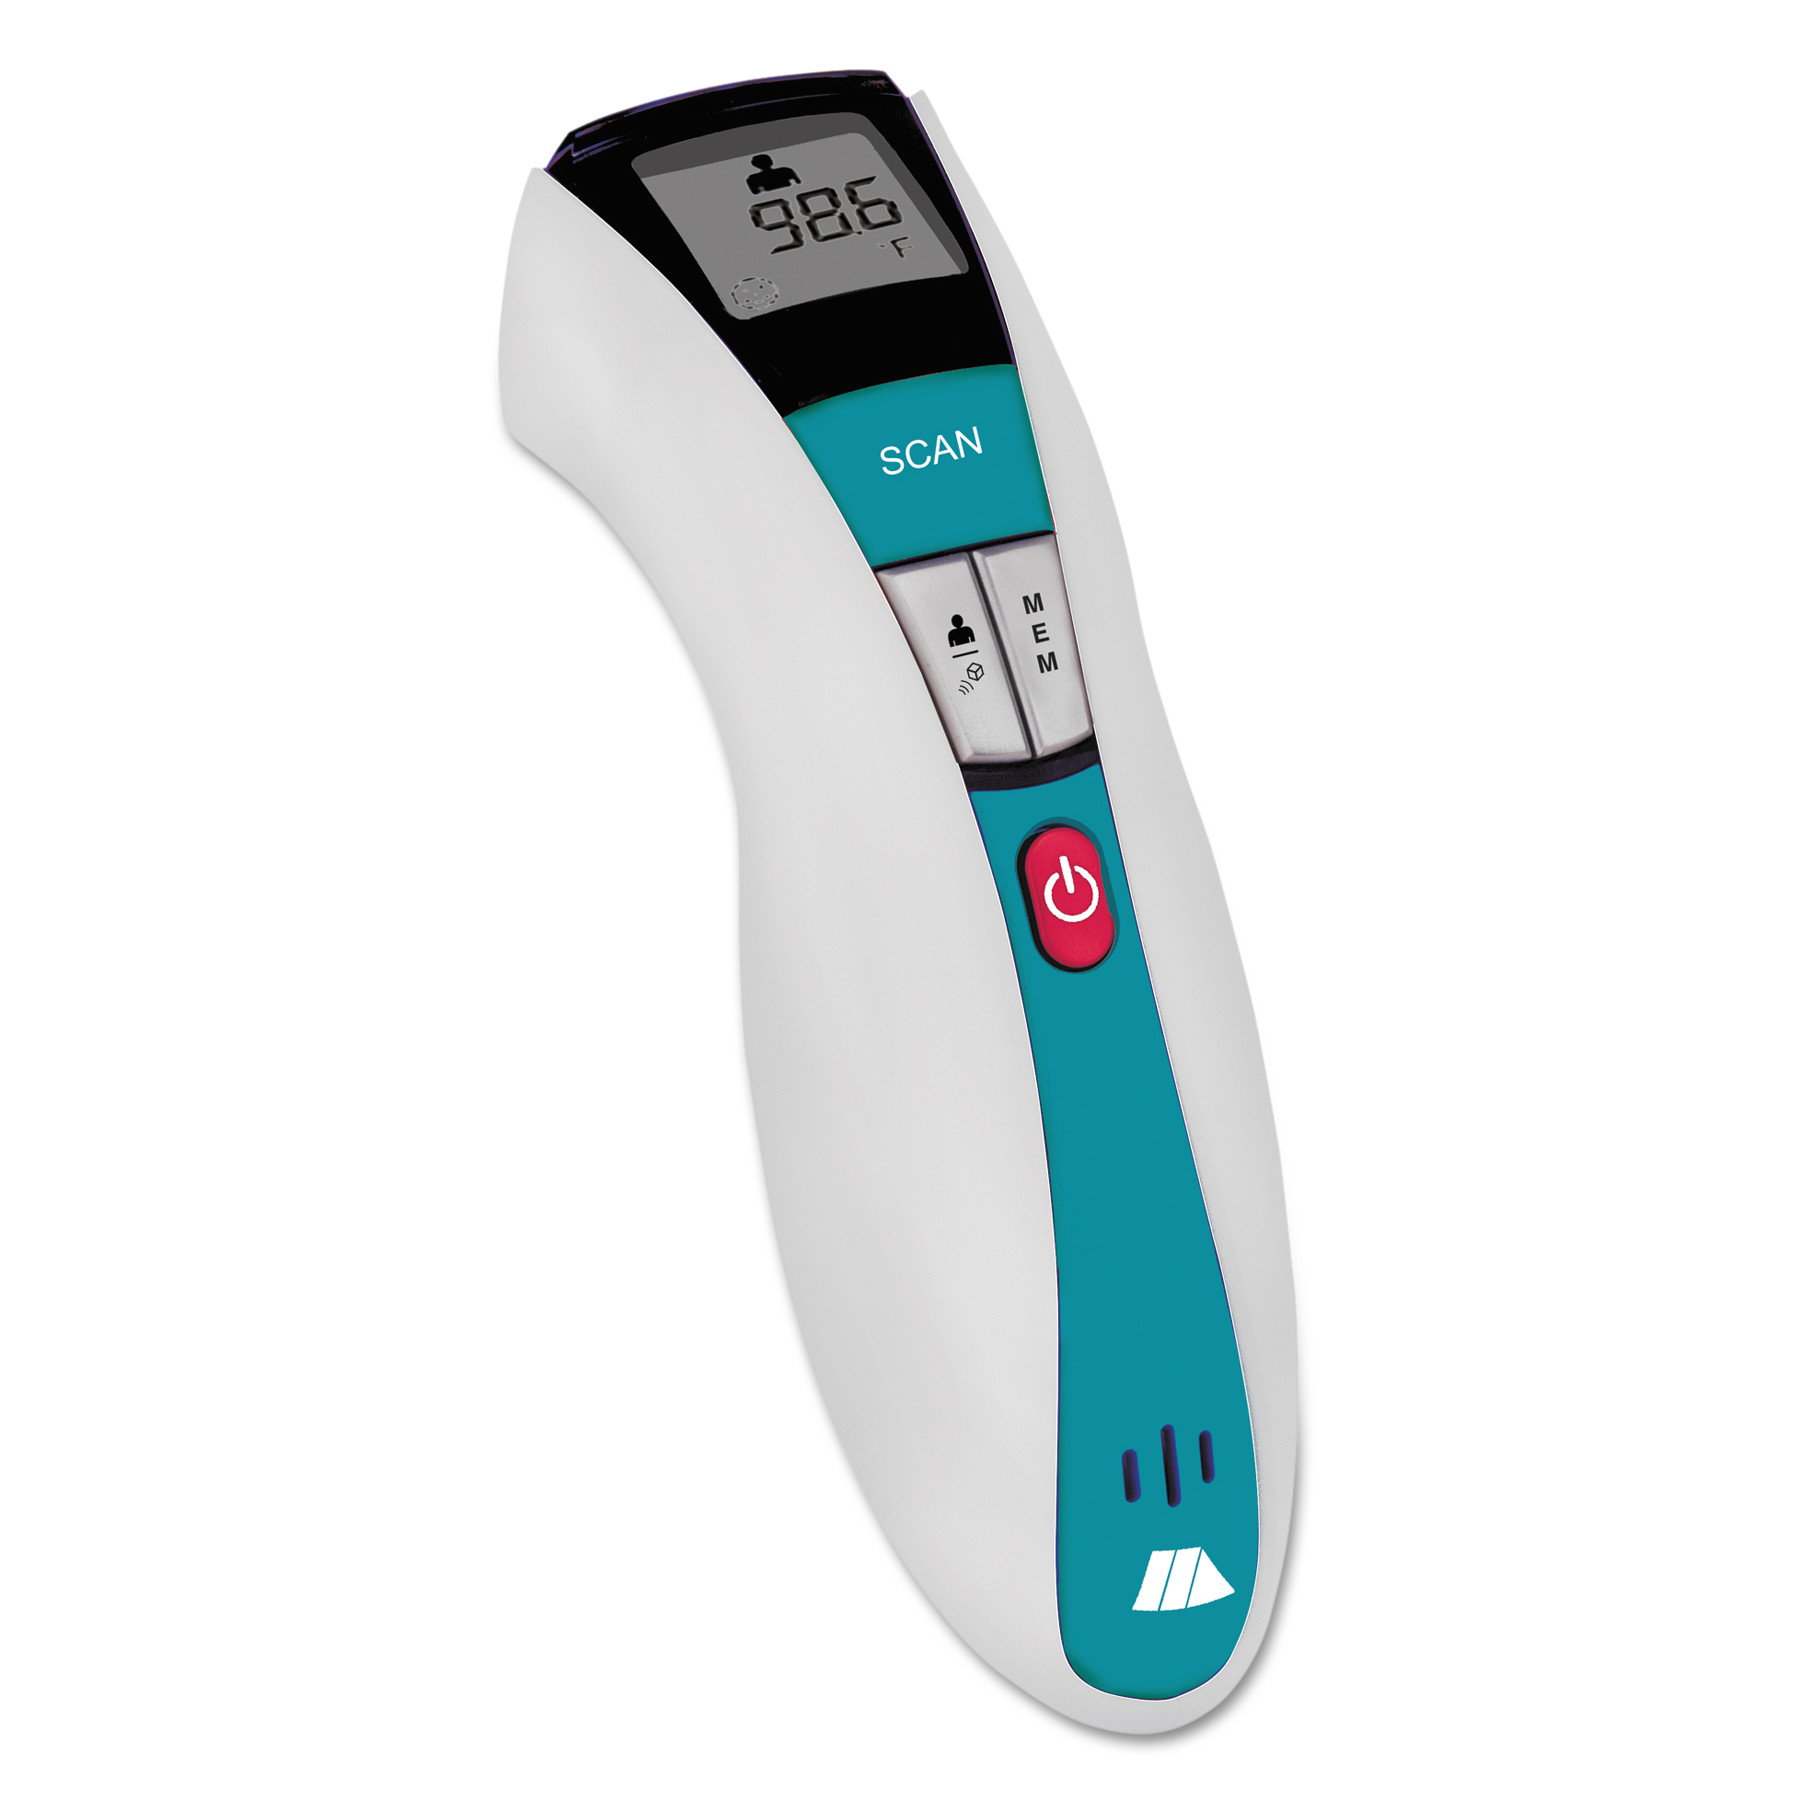 MABIS RediScan Infrared Thermometer w Digital Readout, White Blue, 50F�122F by MABIS